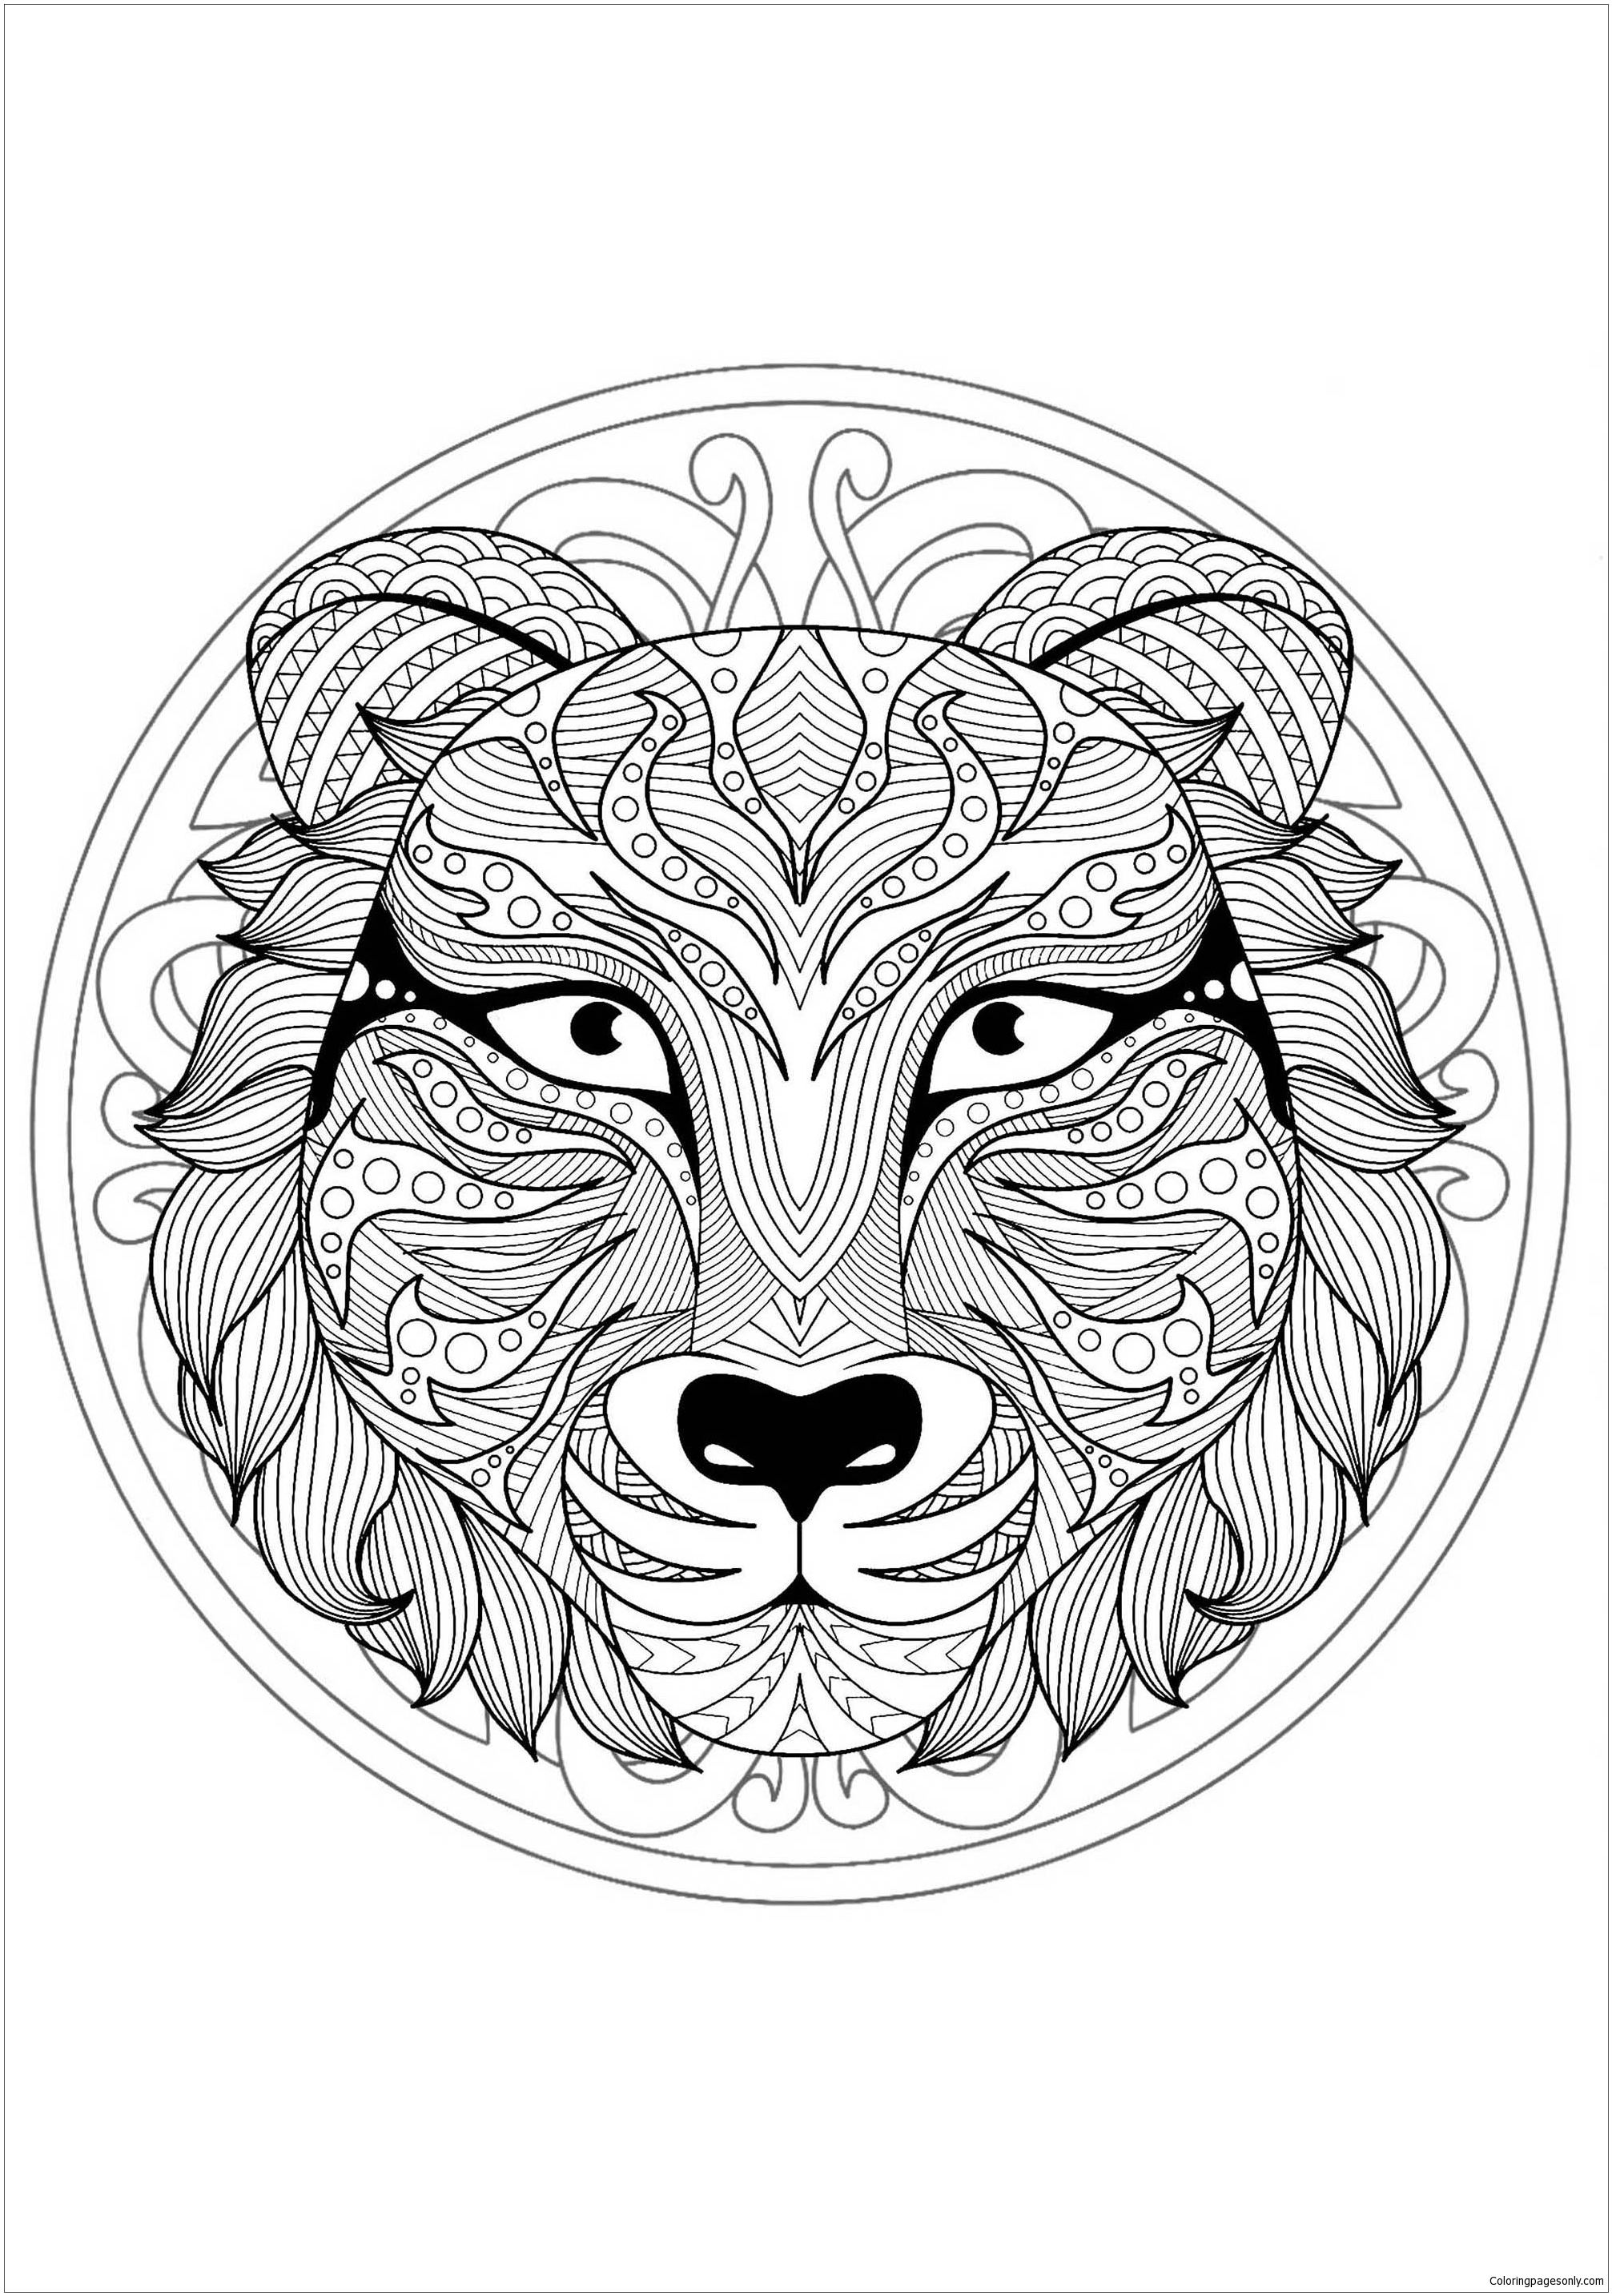 Mandala With Tiger Head 1 Coloring Page Free Coloring